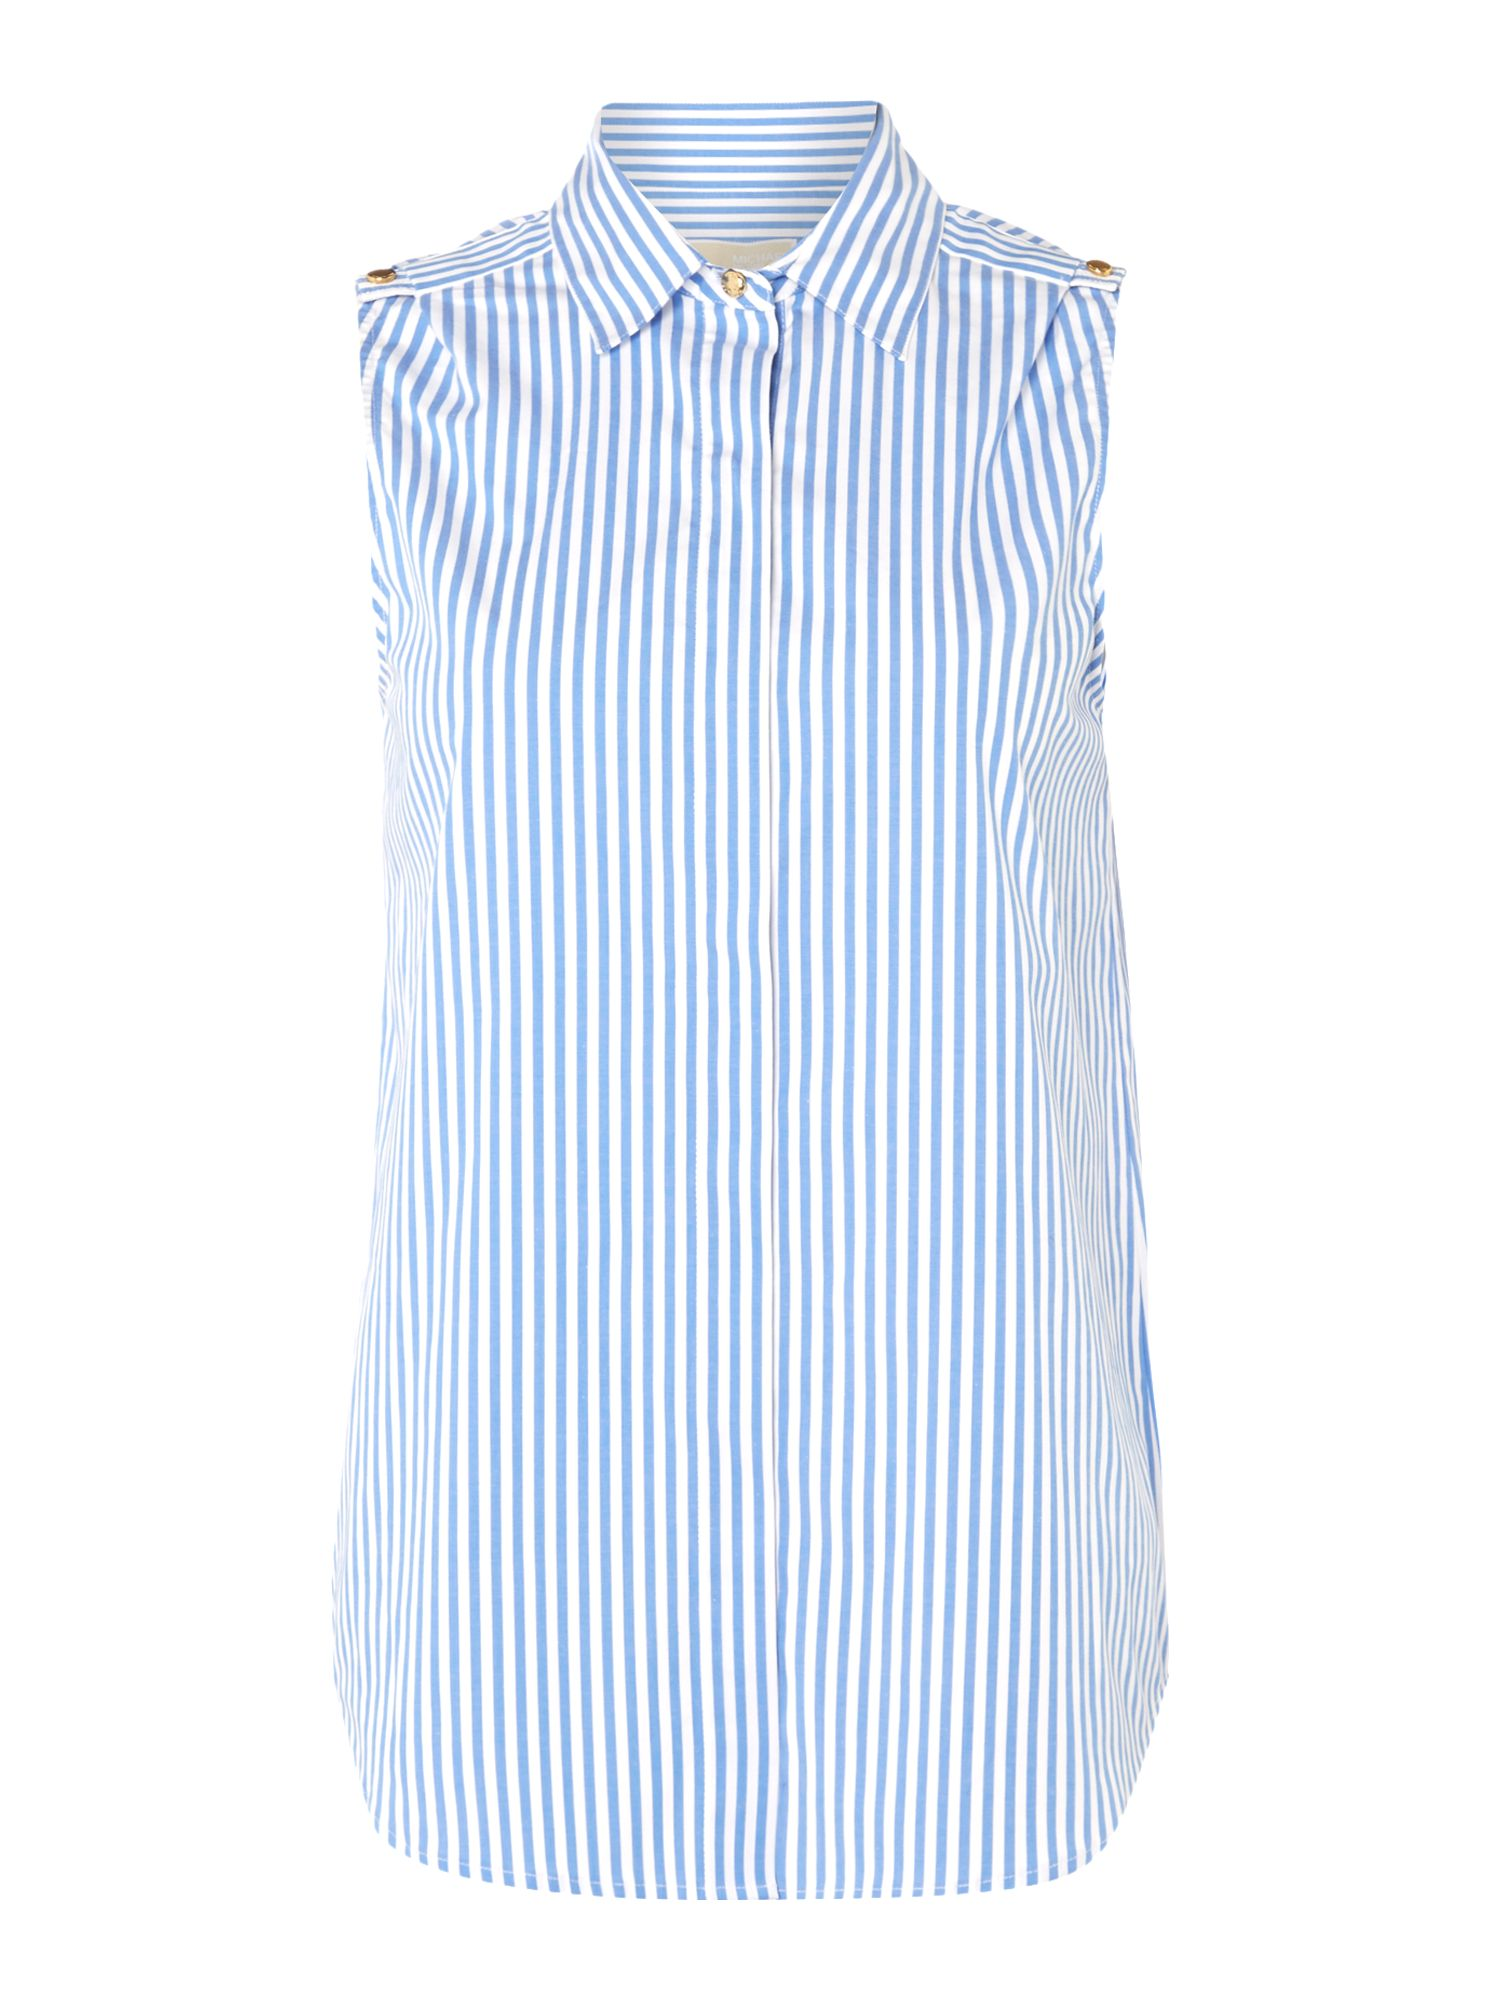 Michael Kors Sleeveless Striped Top, Blue